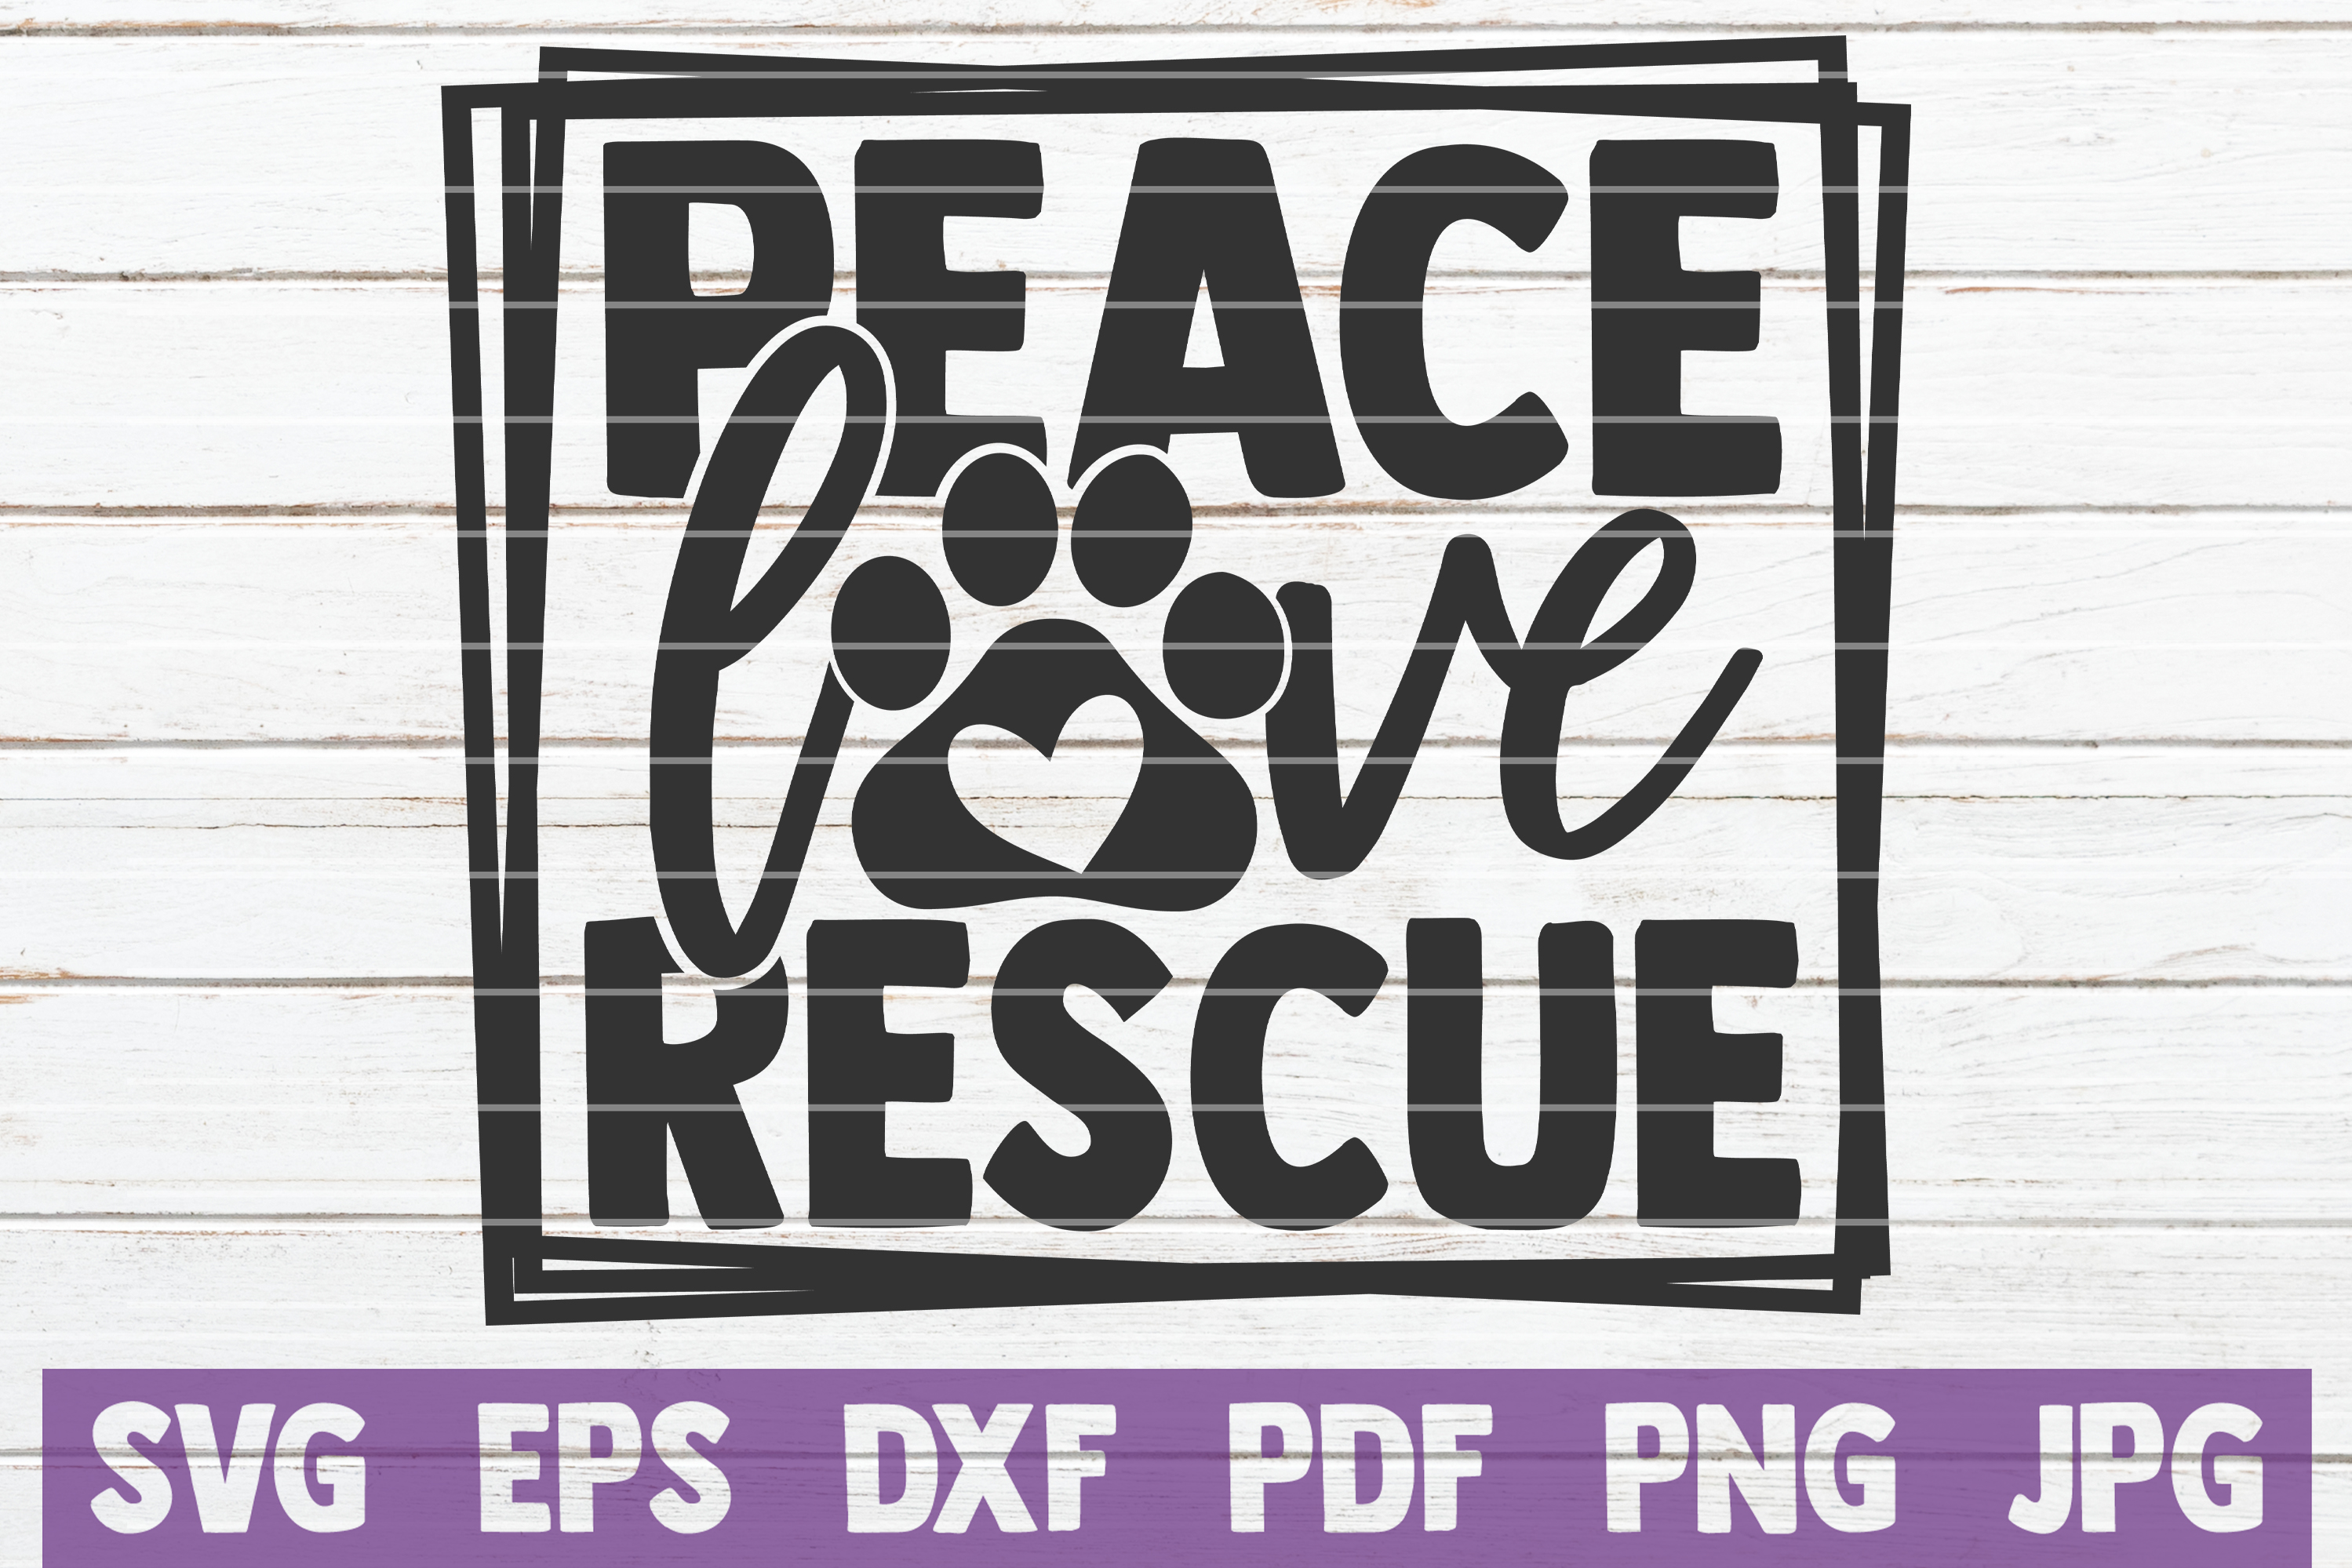 Download Free Peace Love Rescue Svg Cut File Graphic By Mintymarshmallows for Cricut Explore, Silhouette and other cutting machines.